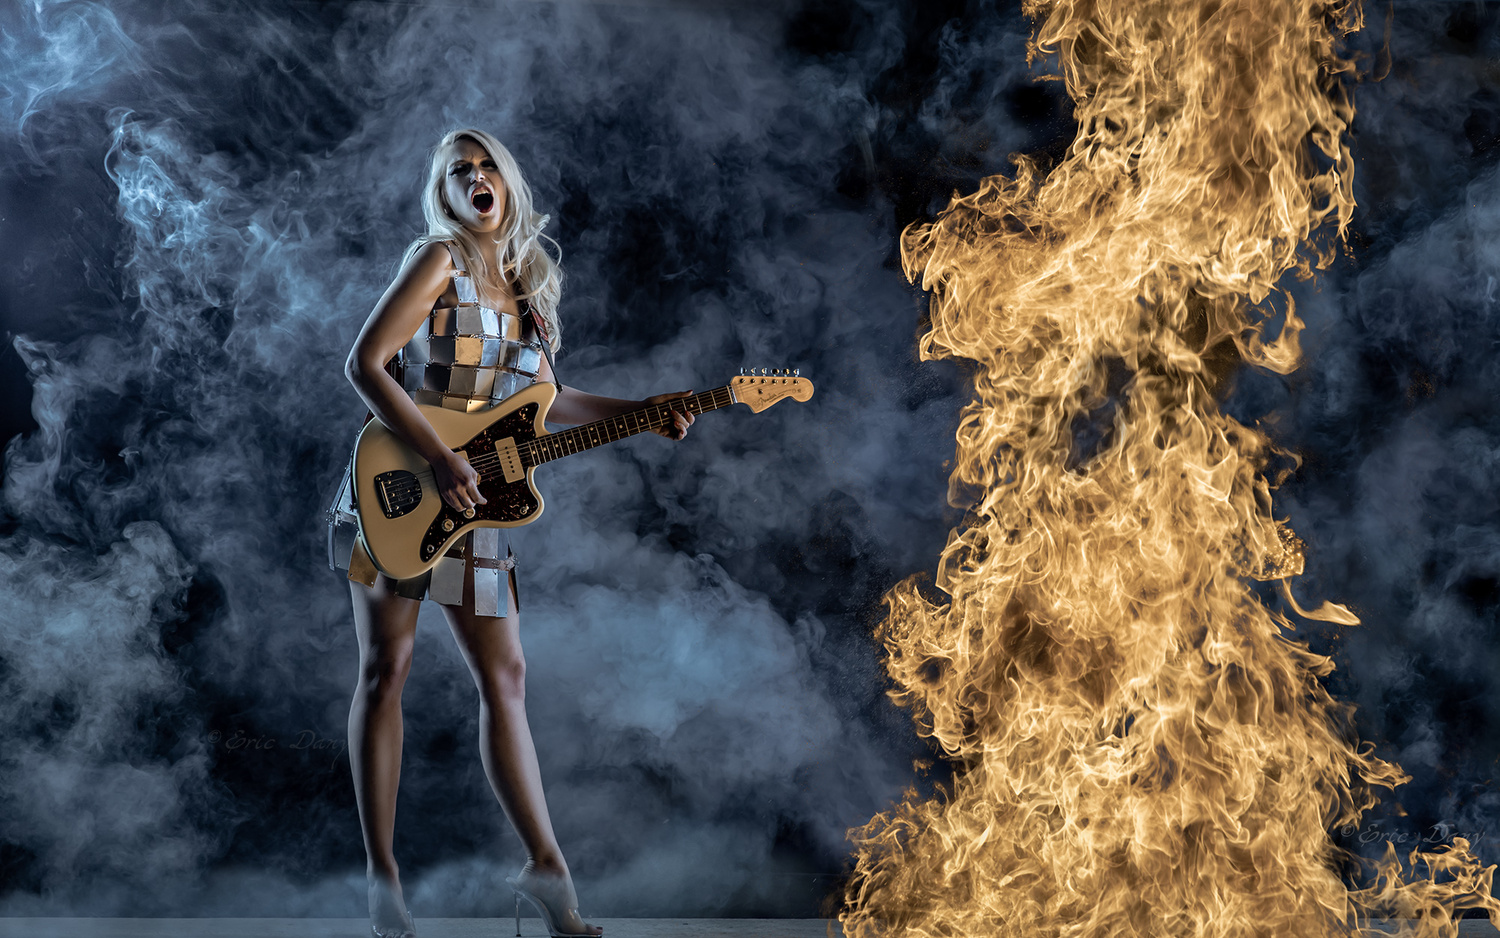 Guitar fever by eric dany